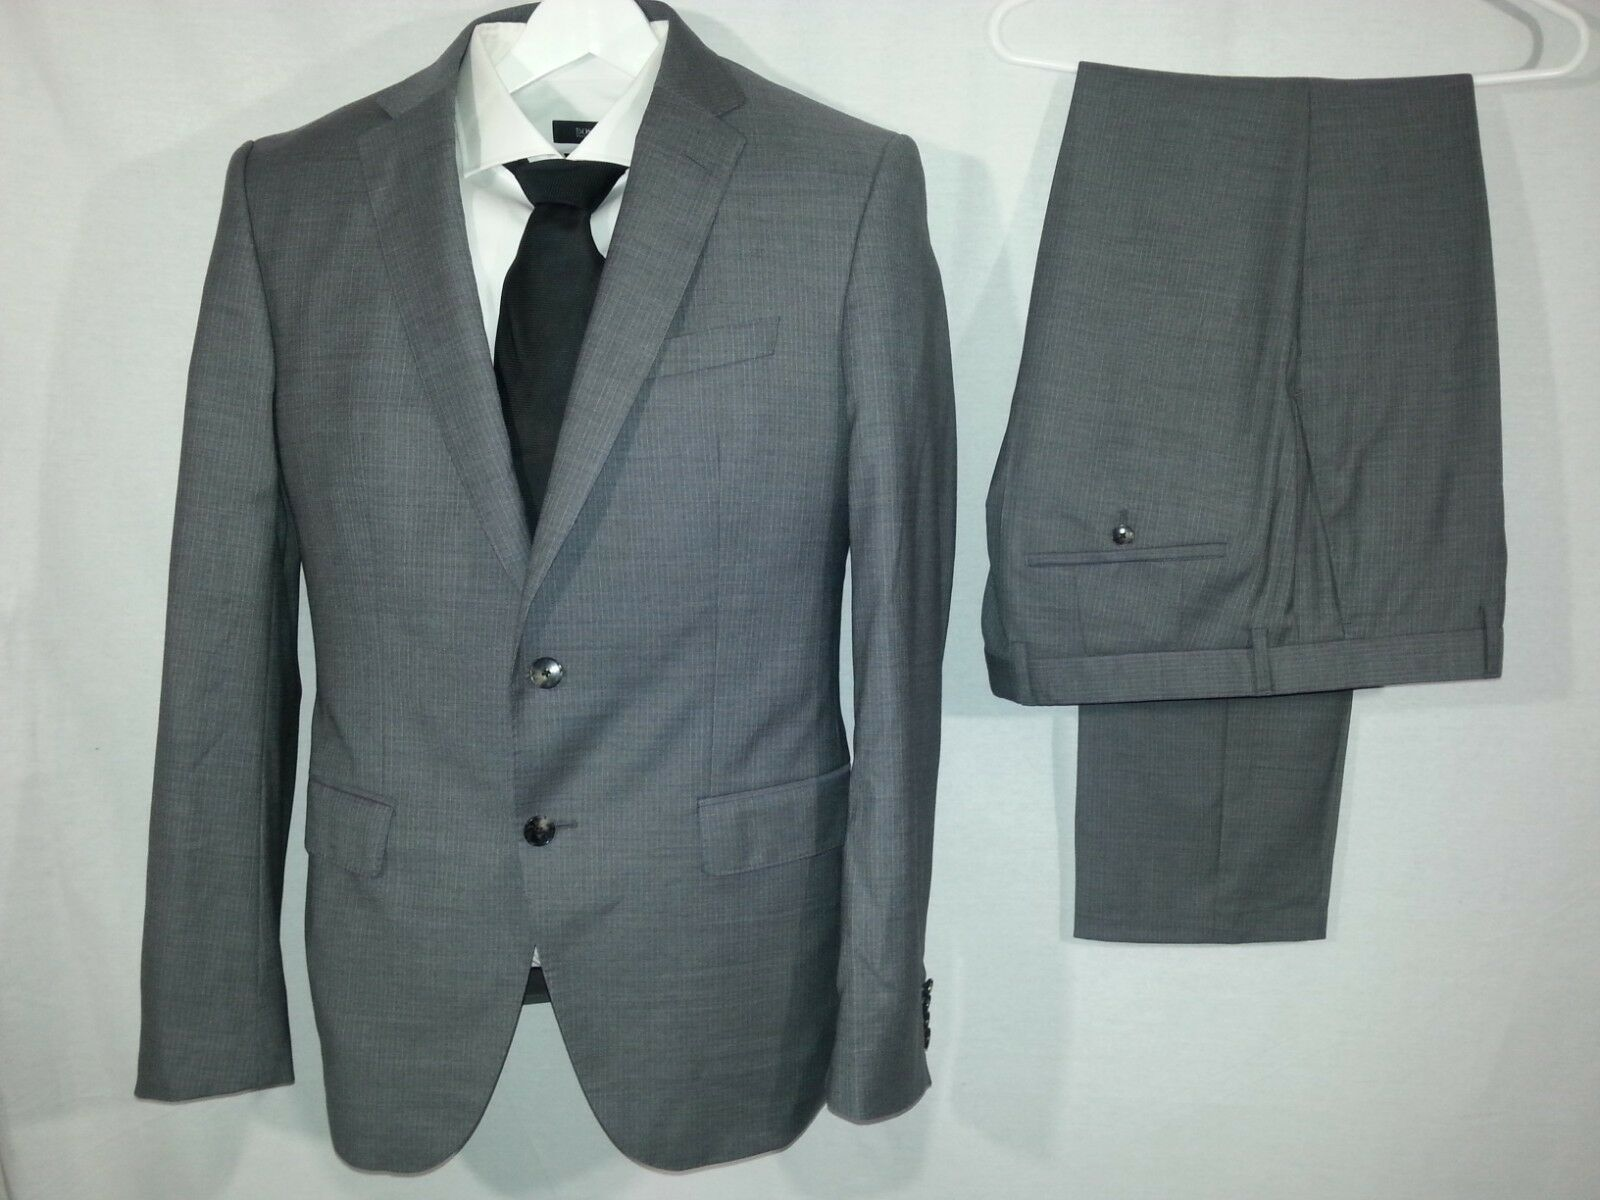 HUGO BOSS Huge 6 Genius 4 Suit Style  50375659 Grau 40R 40R Inseam 33 1097 NWOT